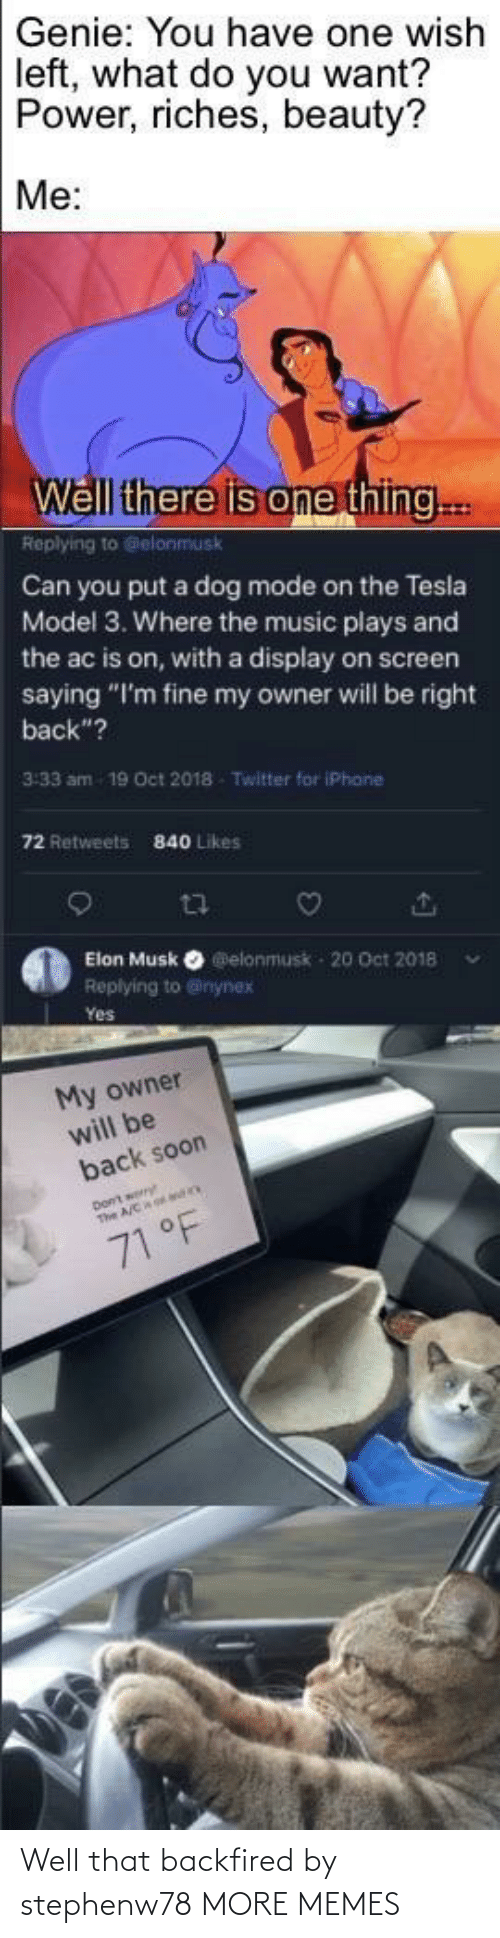 "Power: Genie: You have one wish  left, what do you want?  Power, riches, beauty?  Me:  Well there is one thing..  Replying to Gelonmusk  Can you put a dog mode on the Tesla  Model 3. Where the music plays and  the ac is on, with a display on screen  saying ""I'm fine my owner will be right  back""?  3:33 am  19 Oct 2018  Twitter for iPhane  72 Retweets  840 Likes  Elon Musk O elonmusk - 20 Oct 2018  Replying to @inynex  Yes  My owner  will be  back soon  71 °F Well that backfired by stephenw78 MORE MEMES"